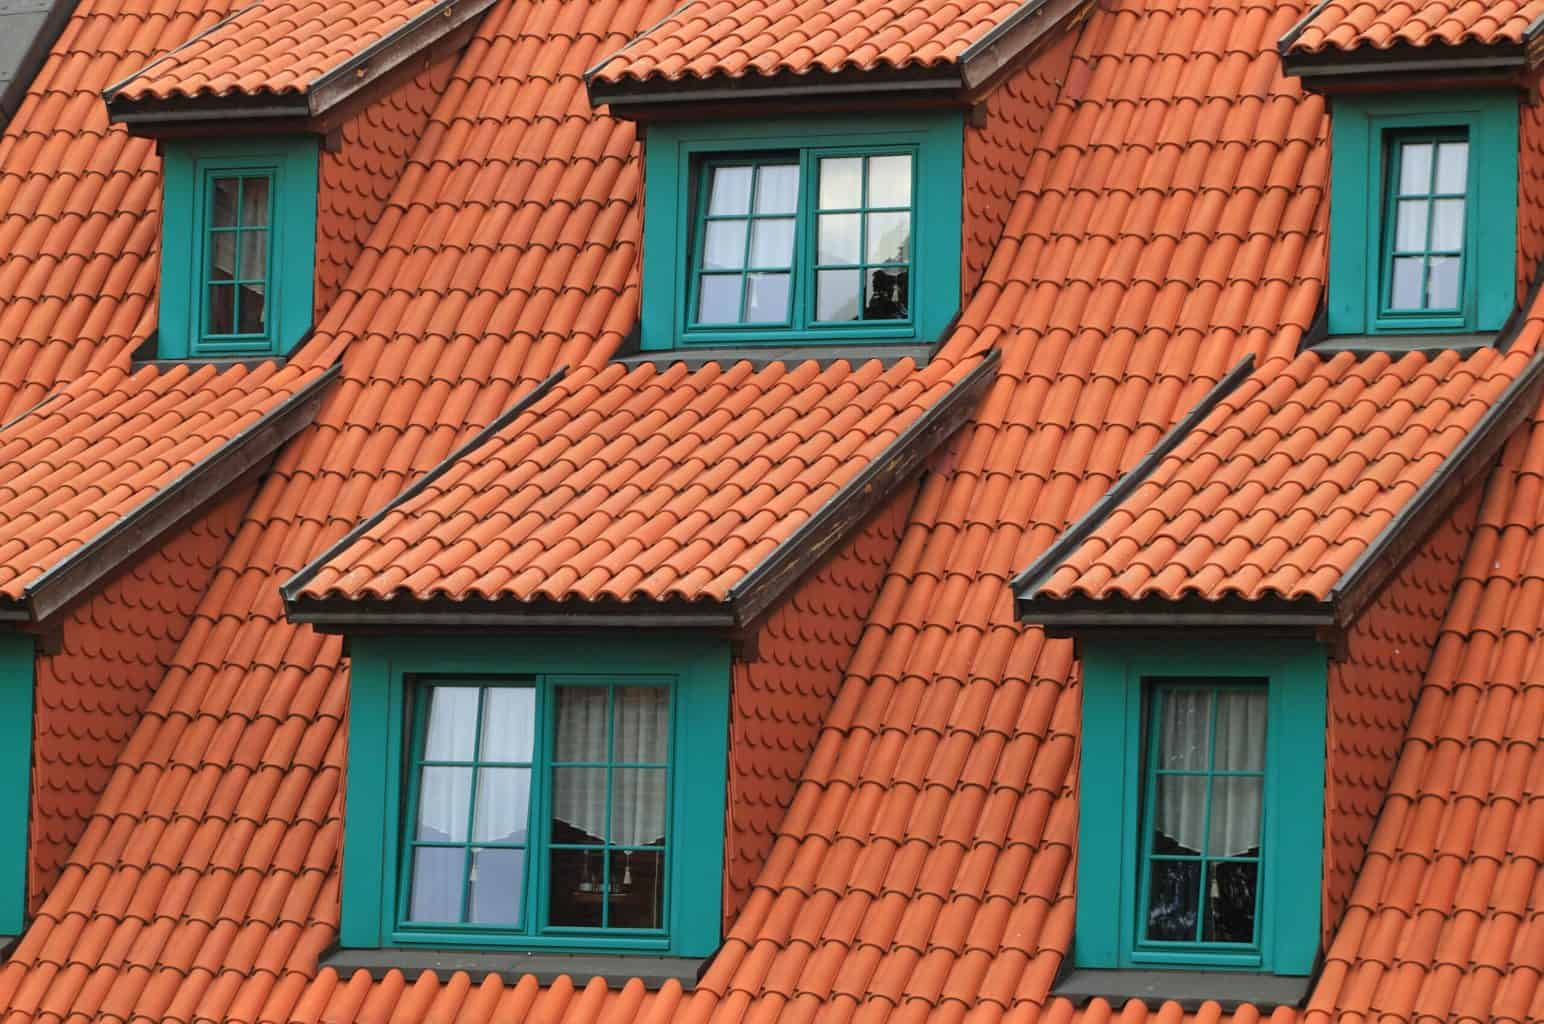 A close up shot of an orange toned roof with windows